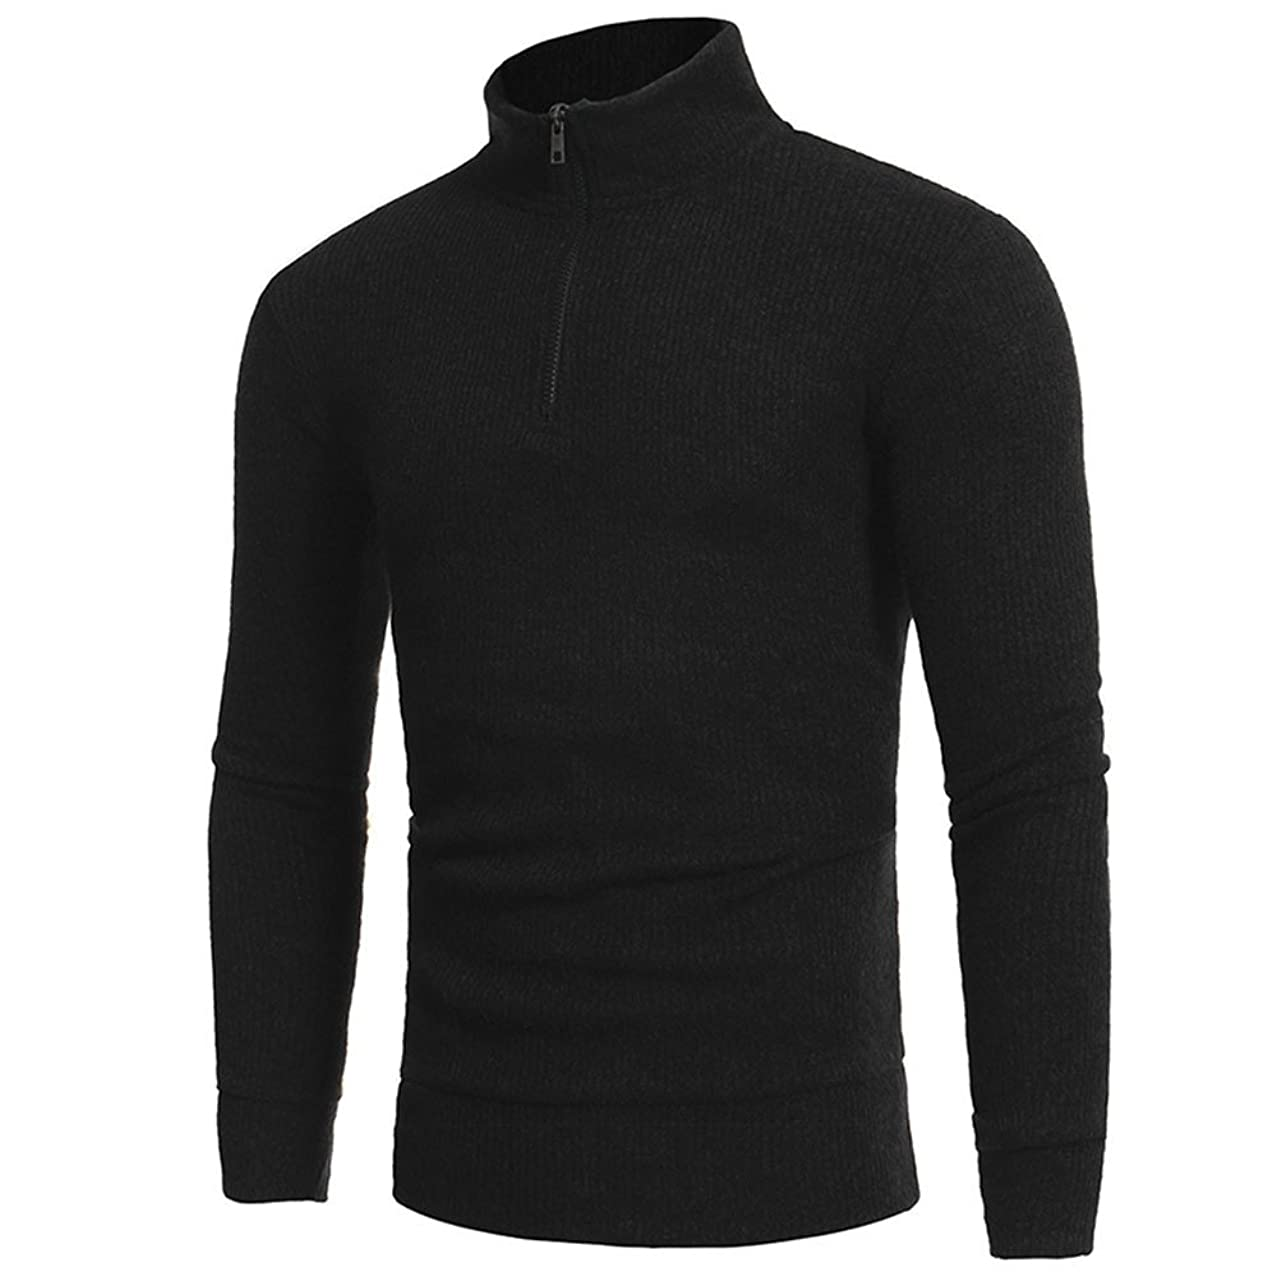 Simple Men Pullover, Man's Fashion Zipper High-Collar Casual Tee,Solid Long Sleeve Sweaters Bottoming Tops